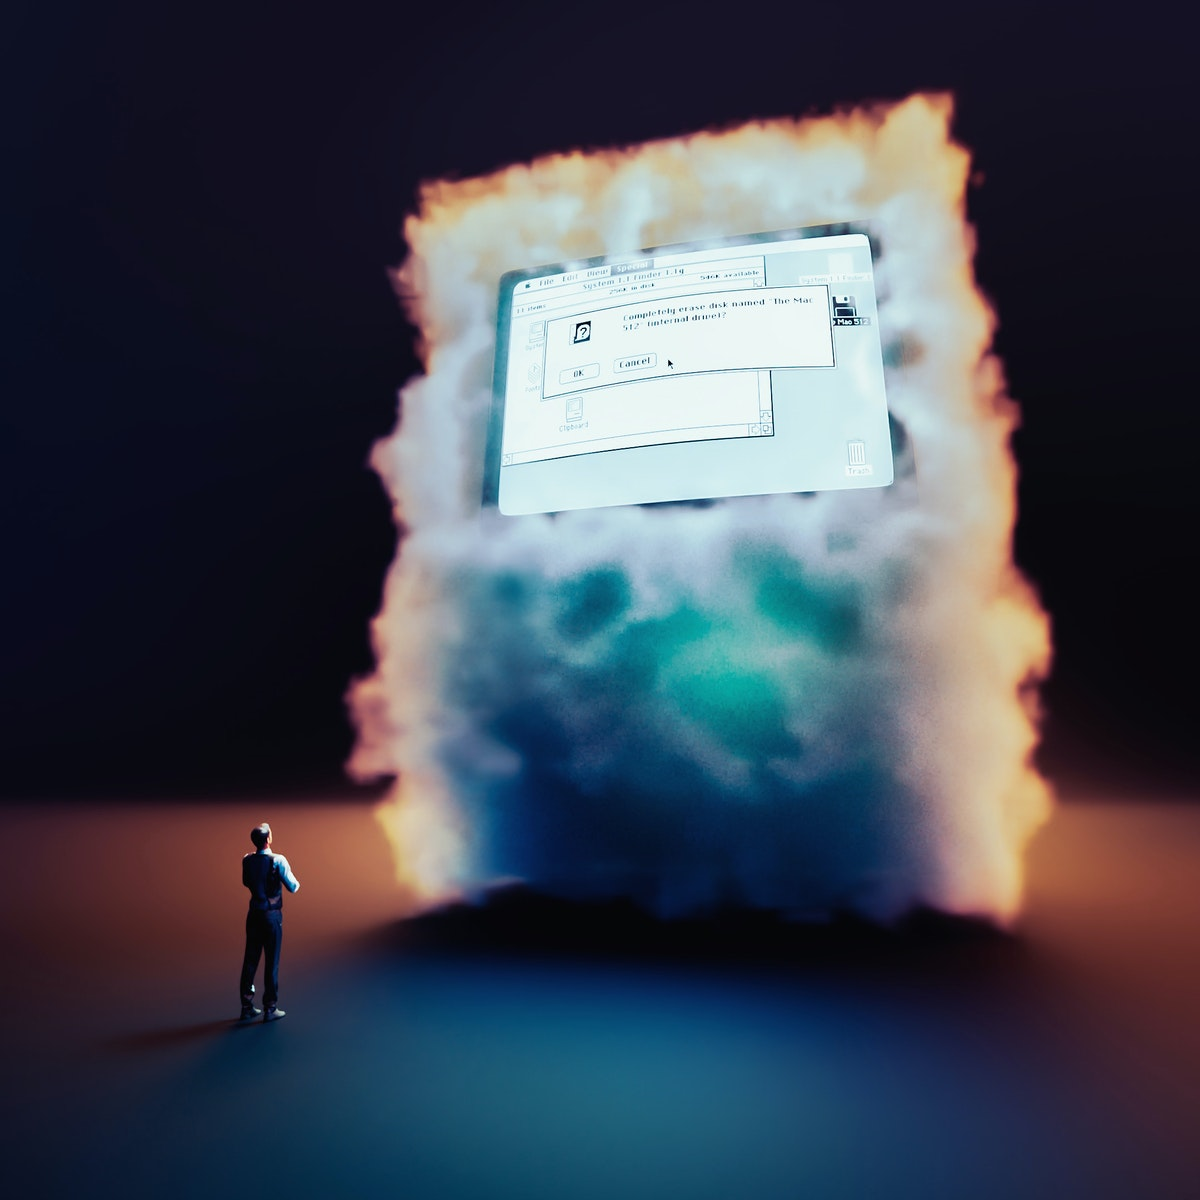 The cloud computer